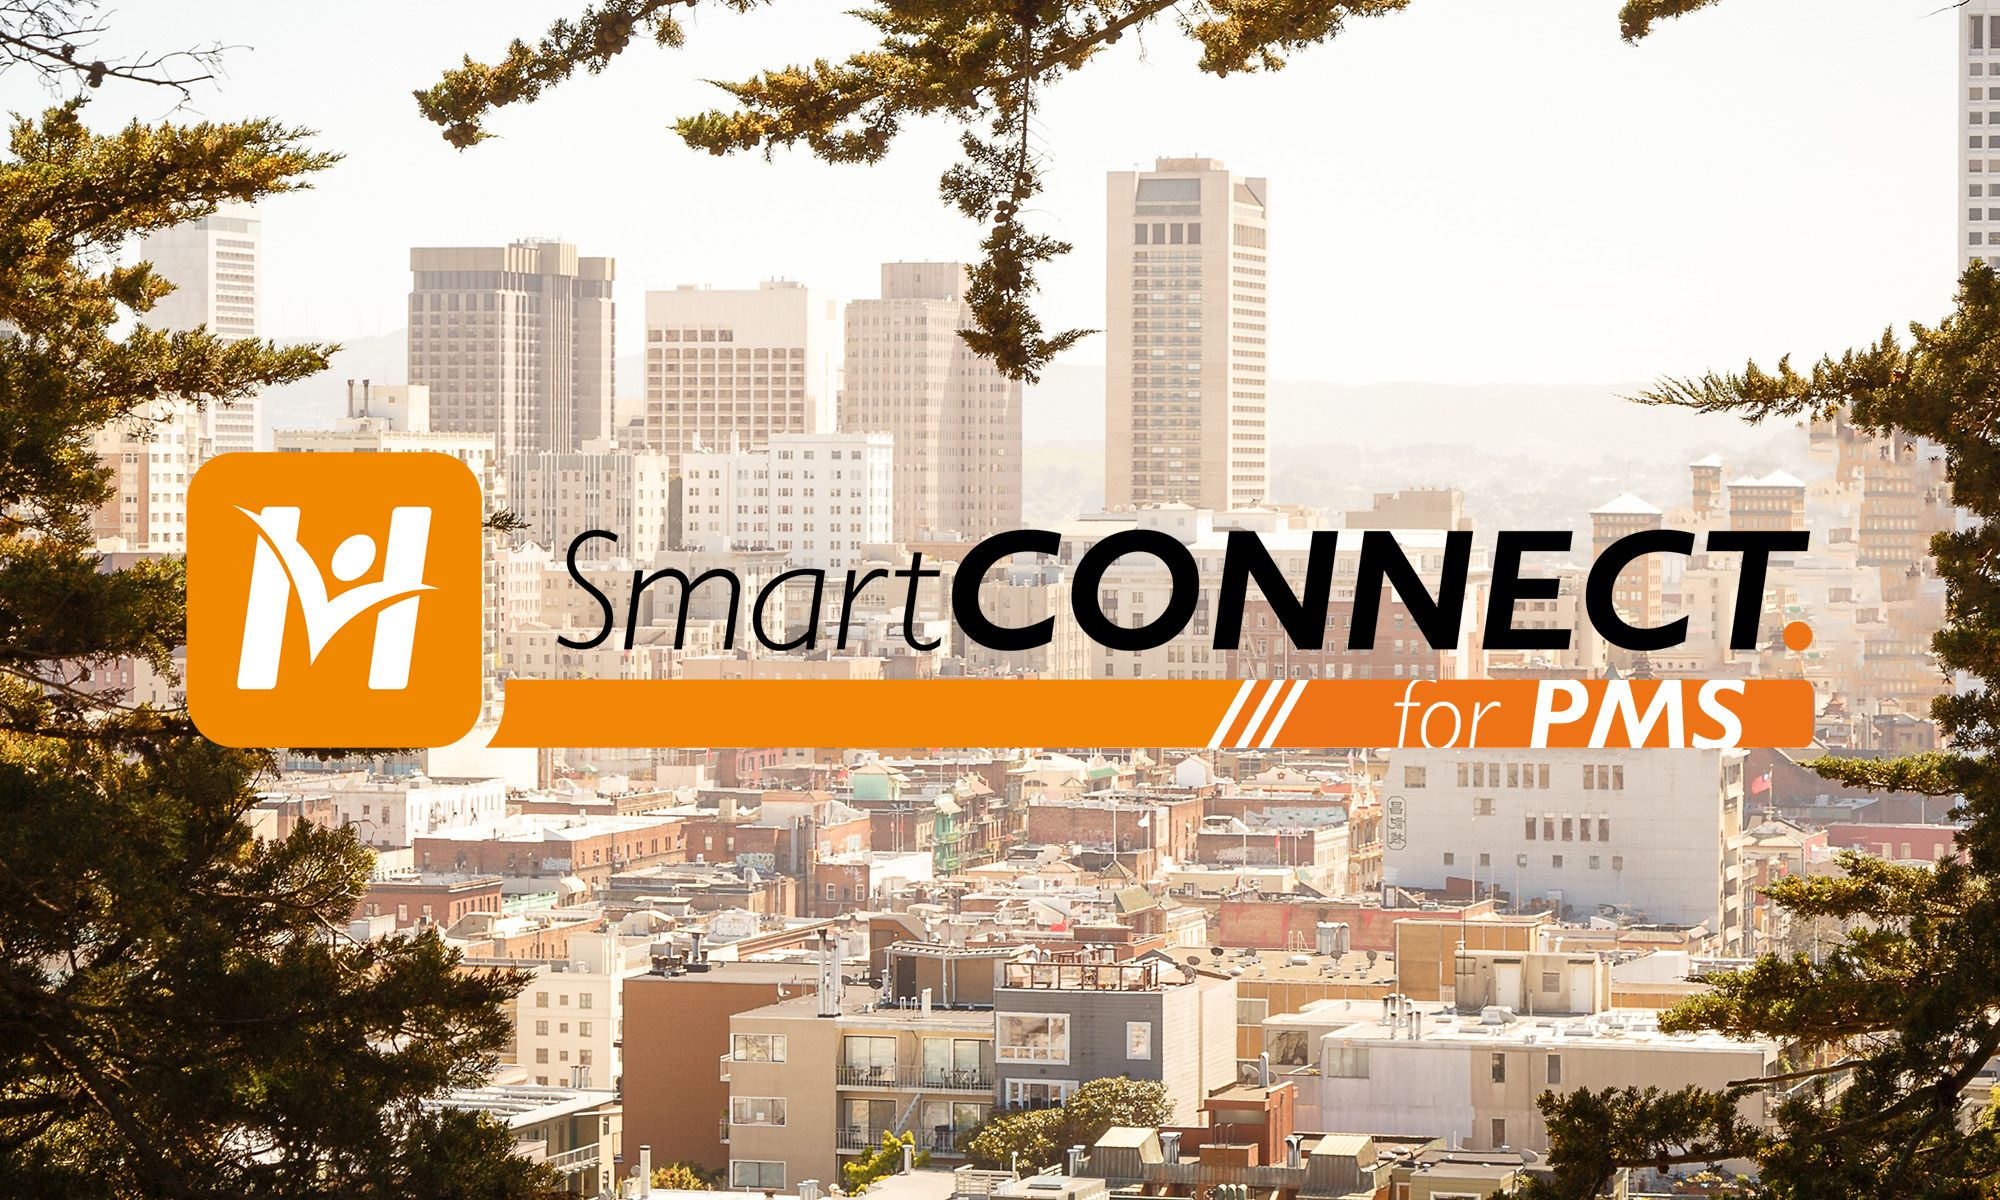 Introducing SmartCONNECT for OPERA Room Reservation System